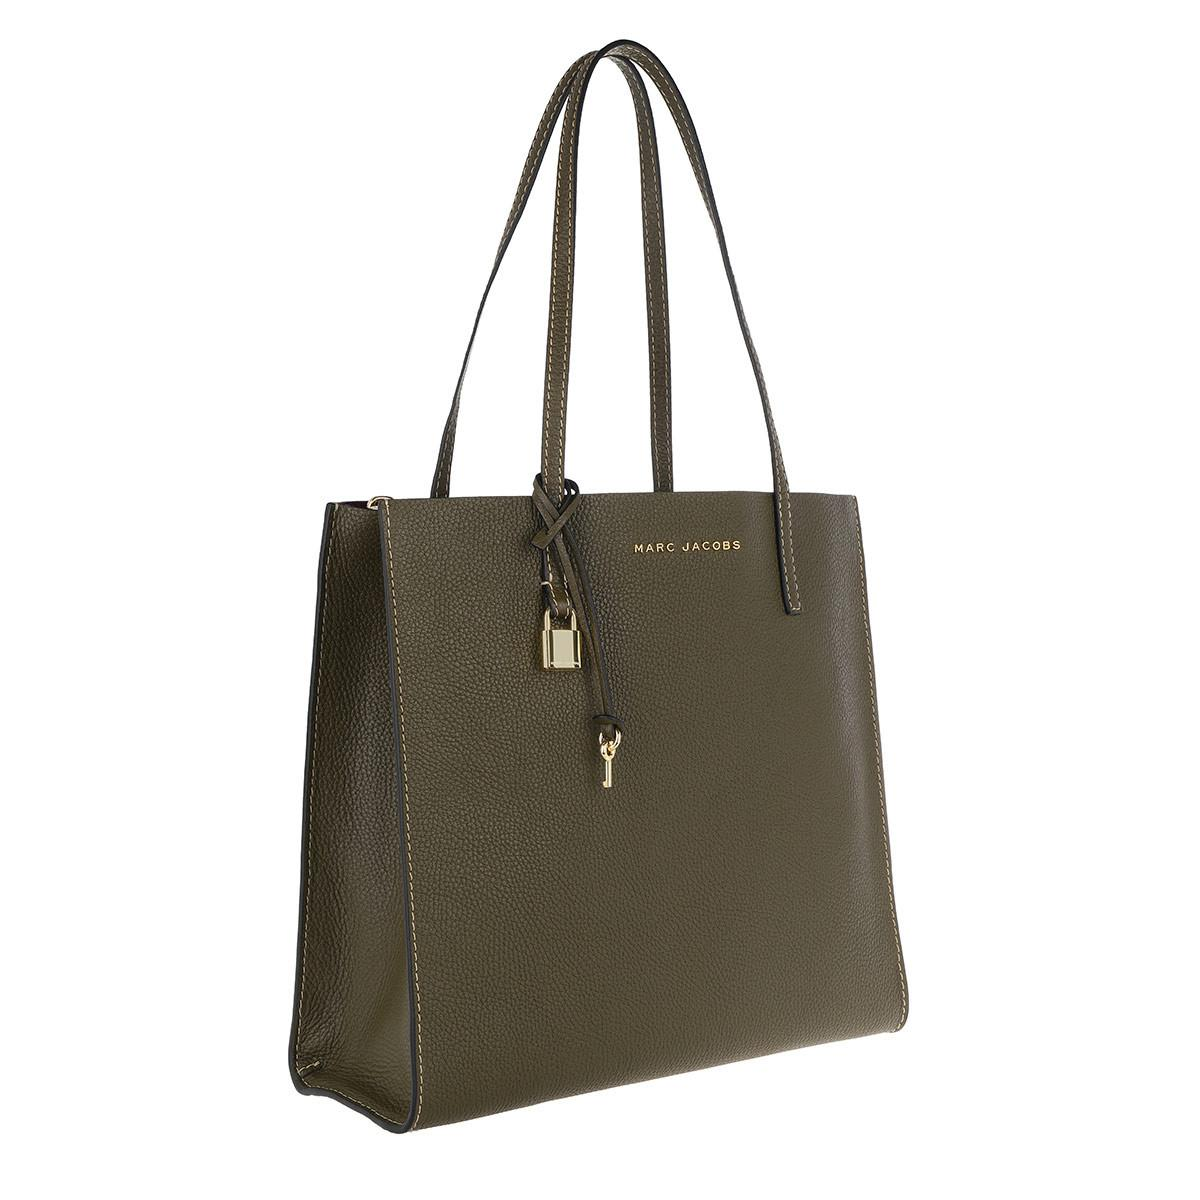 Marc Jacobs Leather The Grind Shopper Tote Bag Lichen in Green